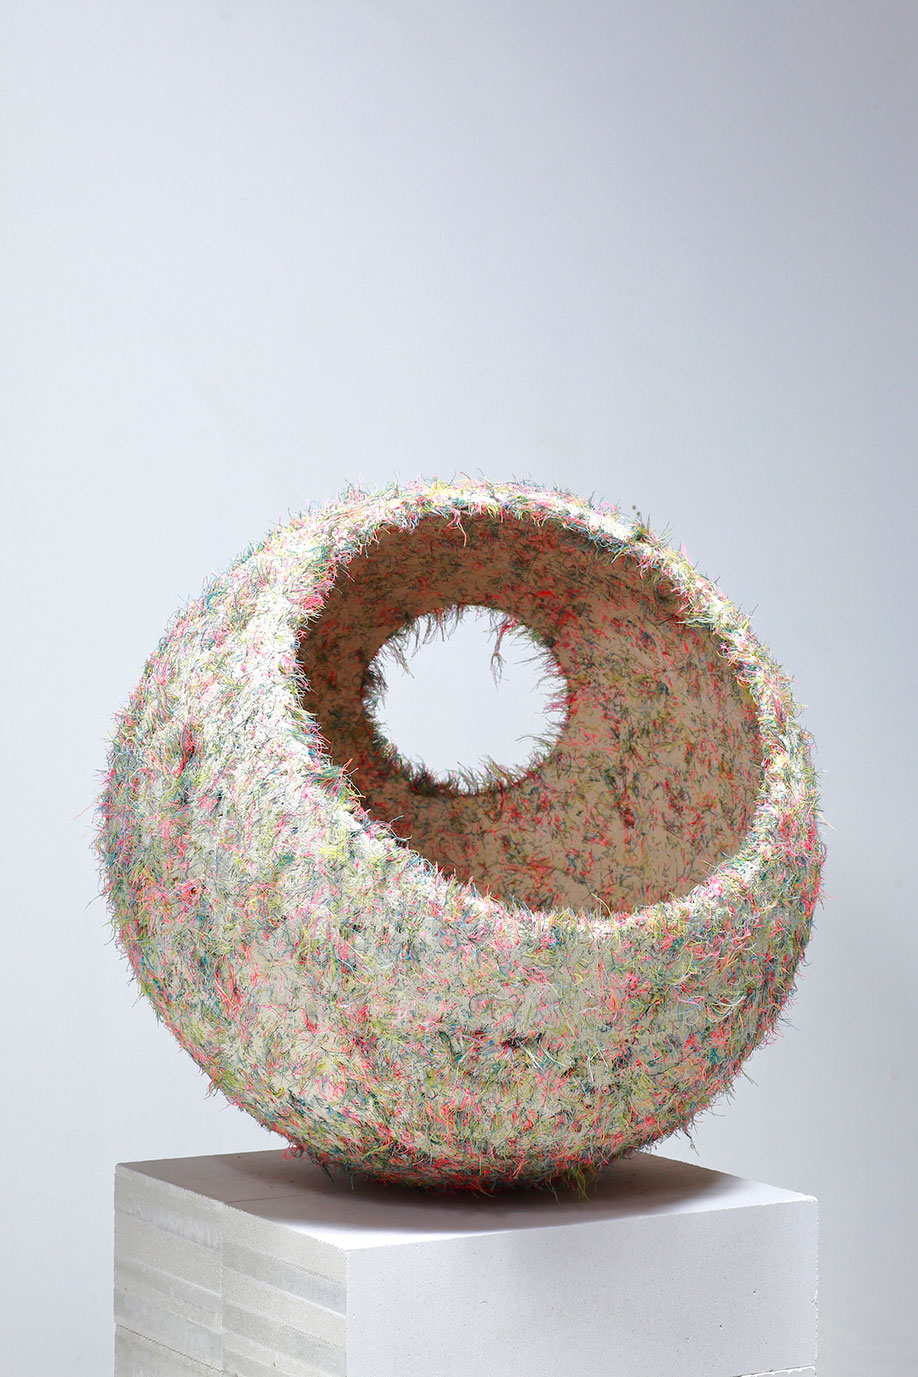 <b>Title: </b>Buoy<br /><b>Year: </b>2018<br /><b>Medium: </b>Water carved plaster and thread<br /><b>Size: </b>500 mm diameter